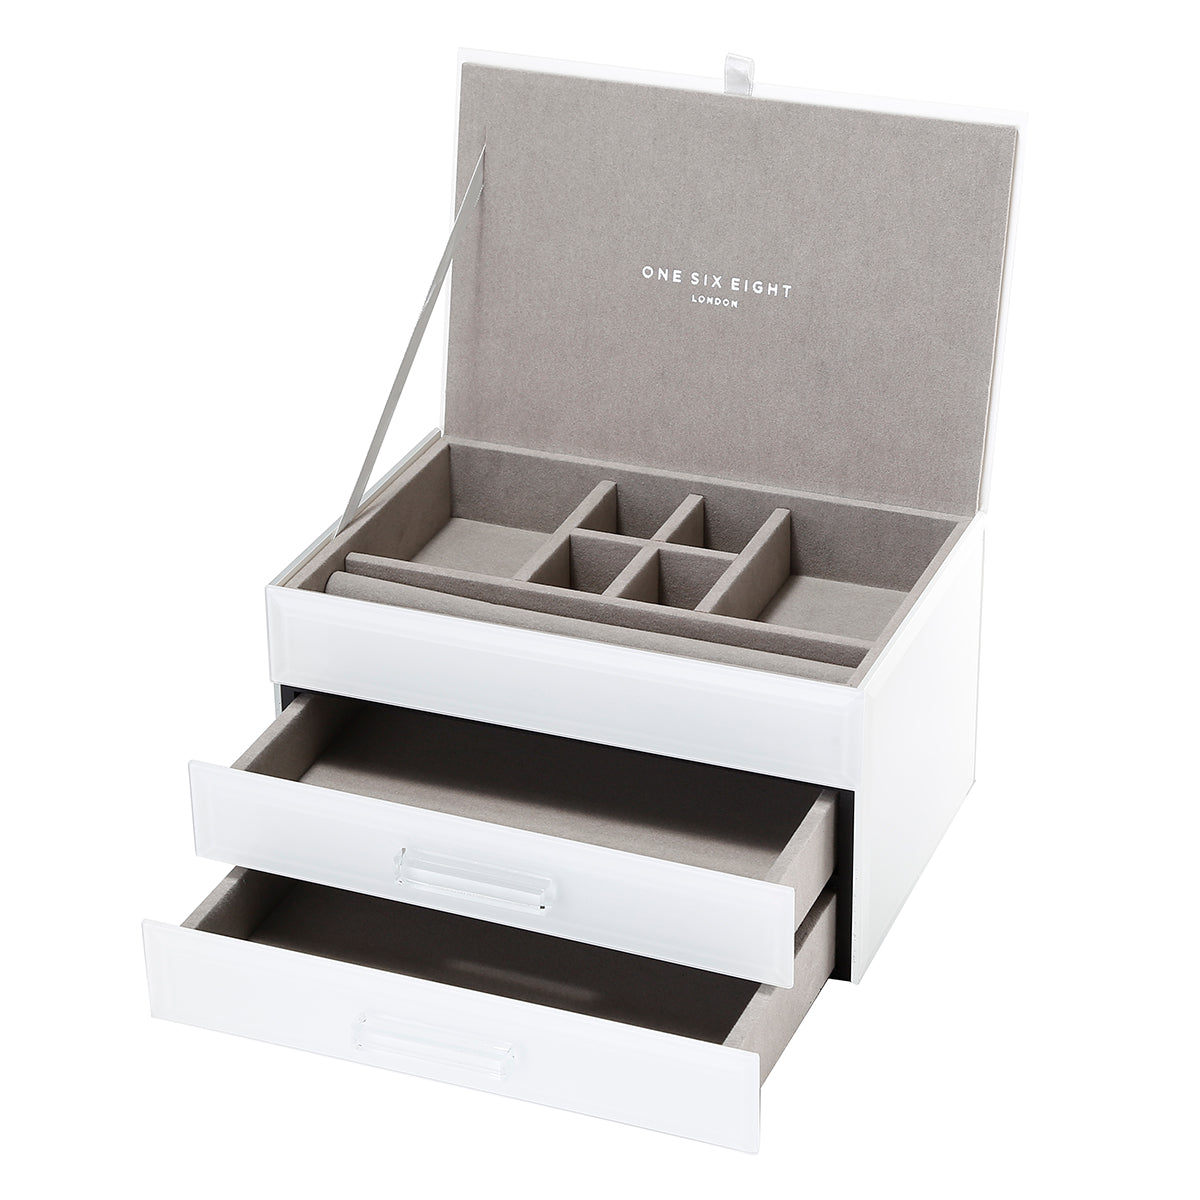 ONE SIX EIGHT LONDON  |  GABRIELLA GLASS JEWELLERY BOX  |  NUDE MEDIUM